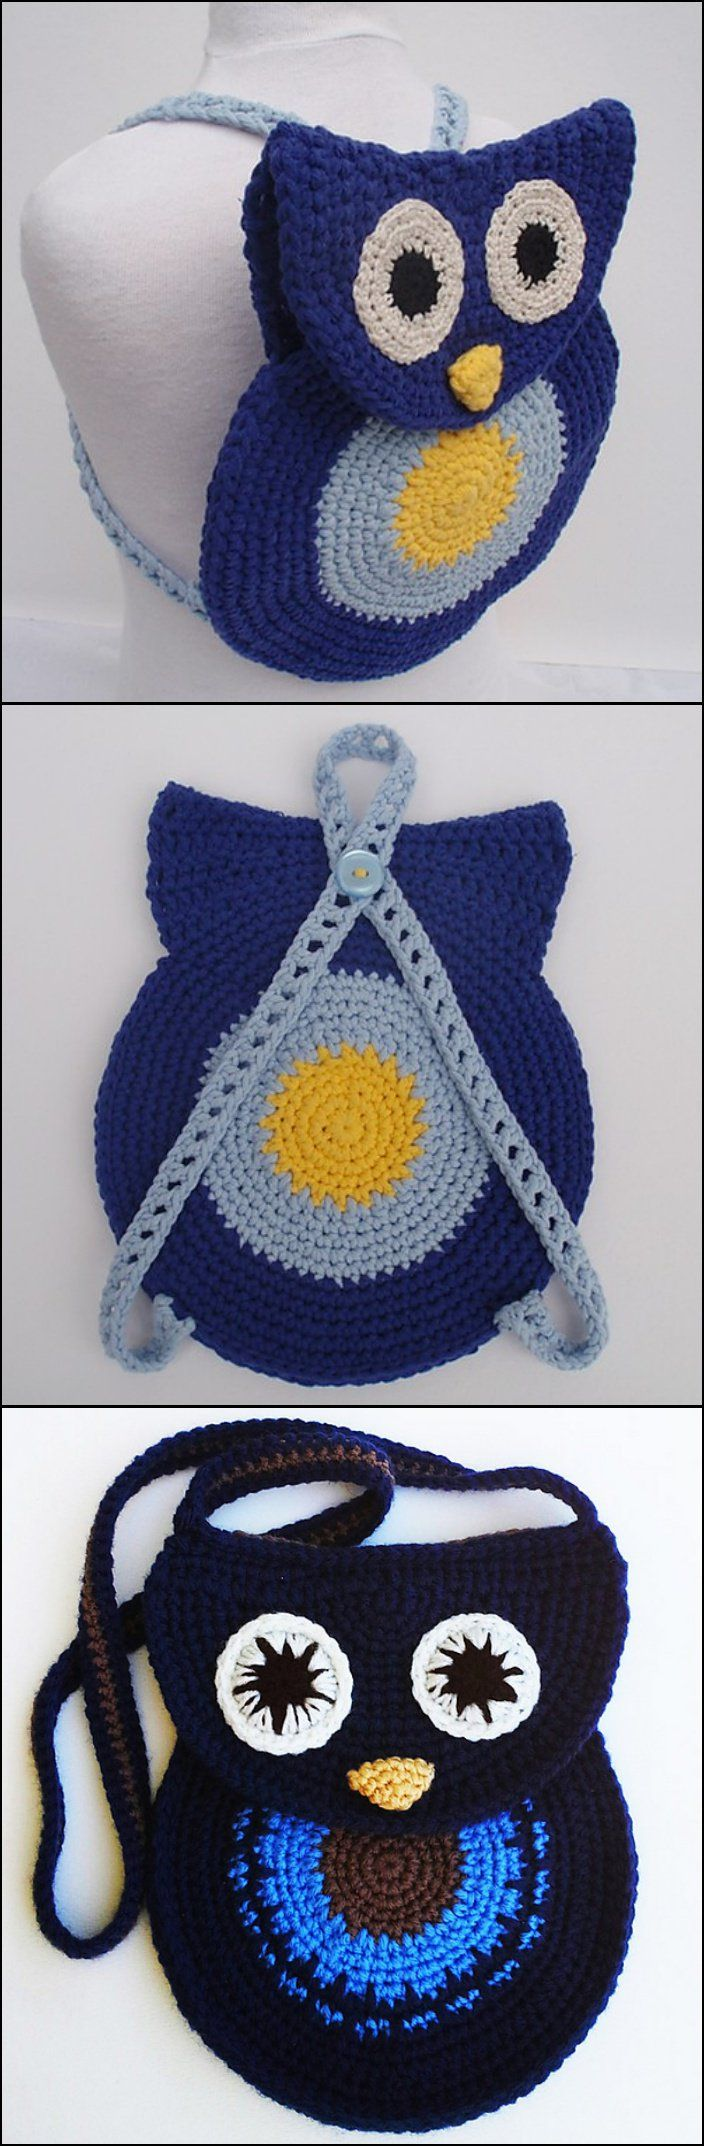 18 Crochet Backpack with Free Patterns | Tasche häkeln, Häkeltasche ...